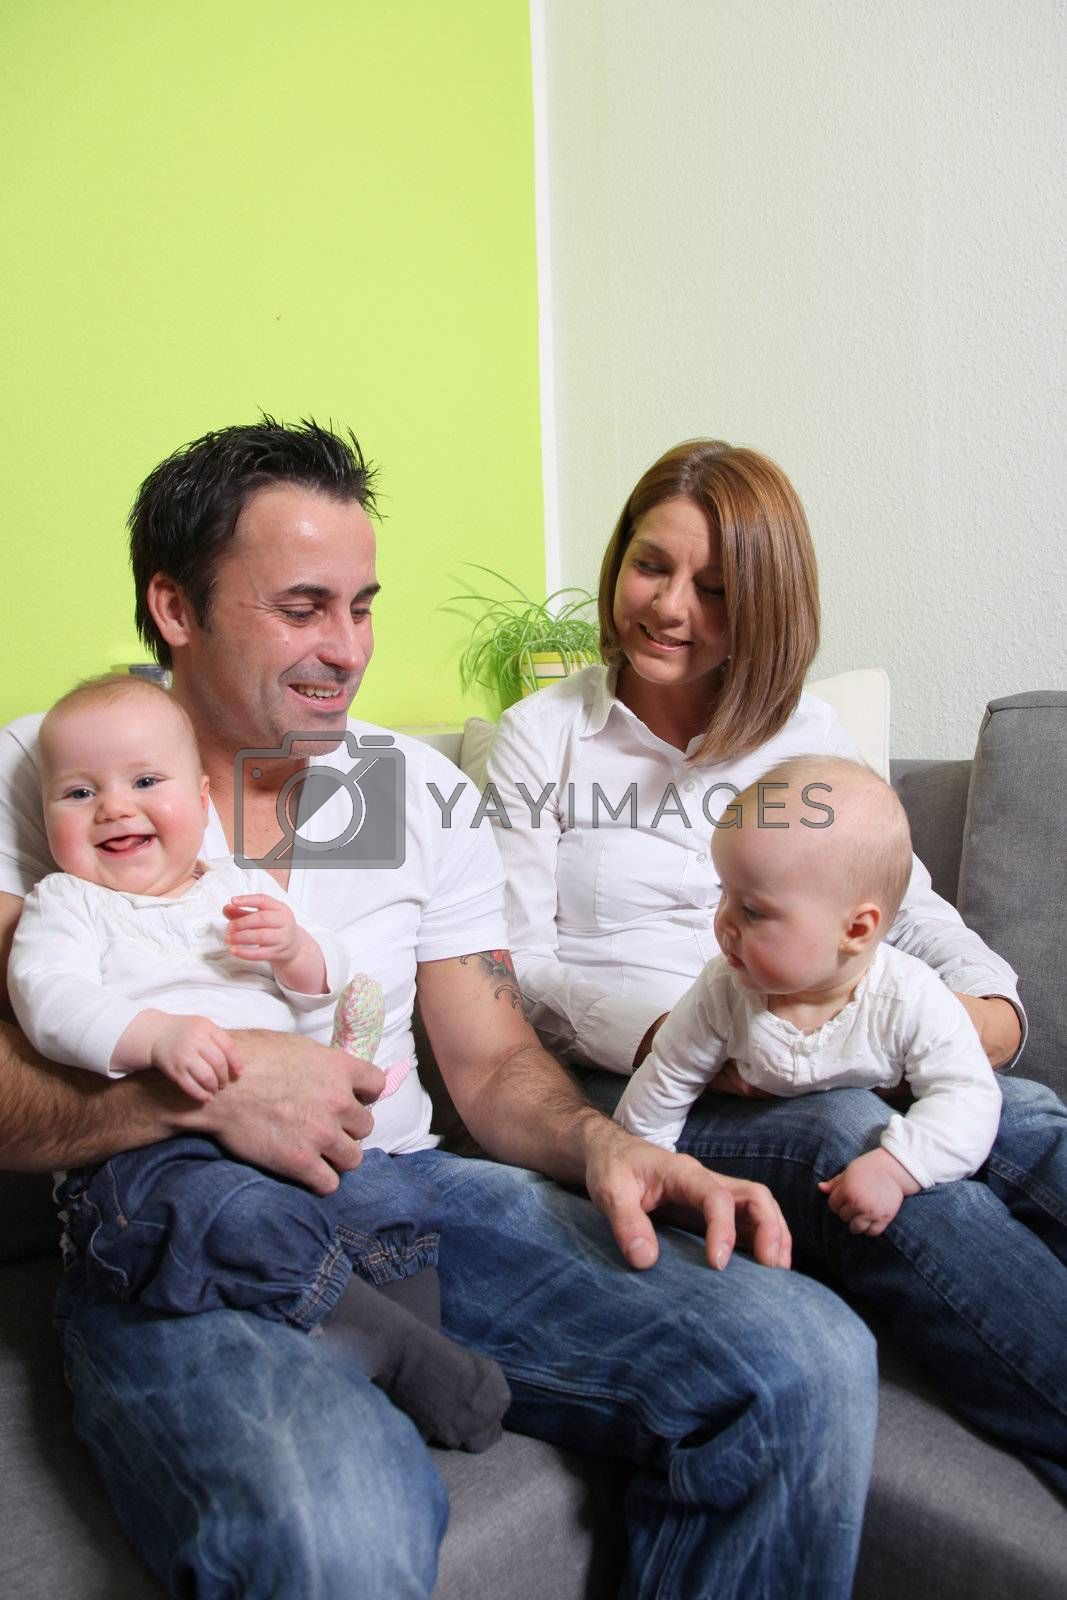 Young families with babies - twins. The parents and the baby laugh friendly and happy.